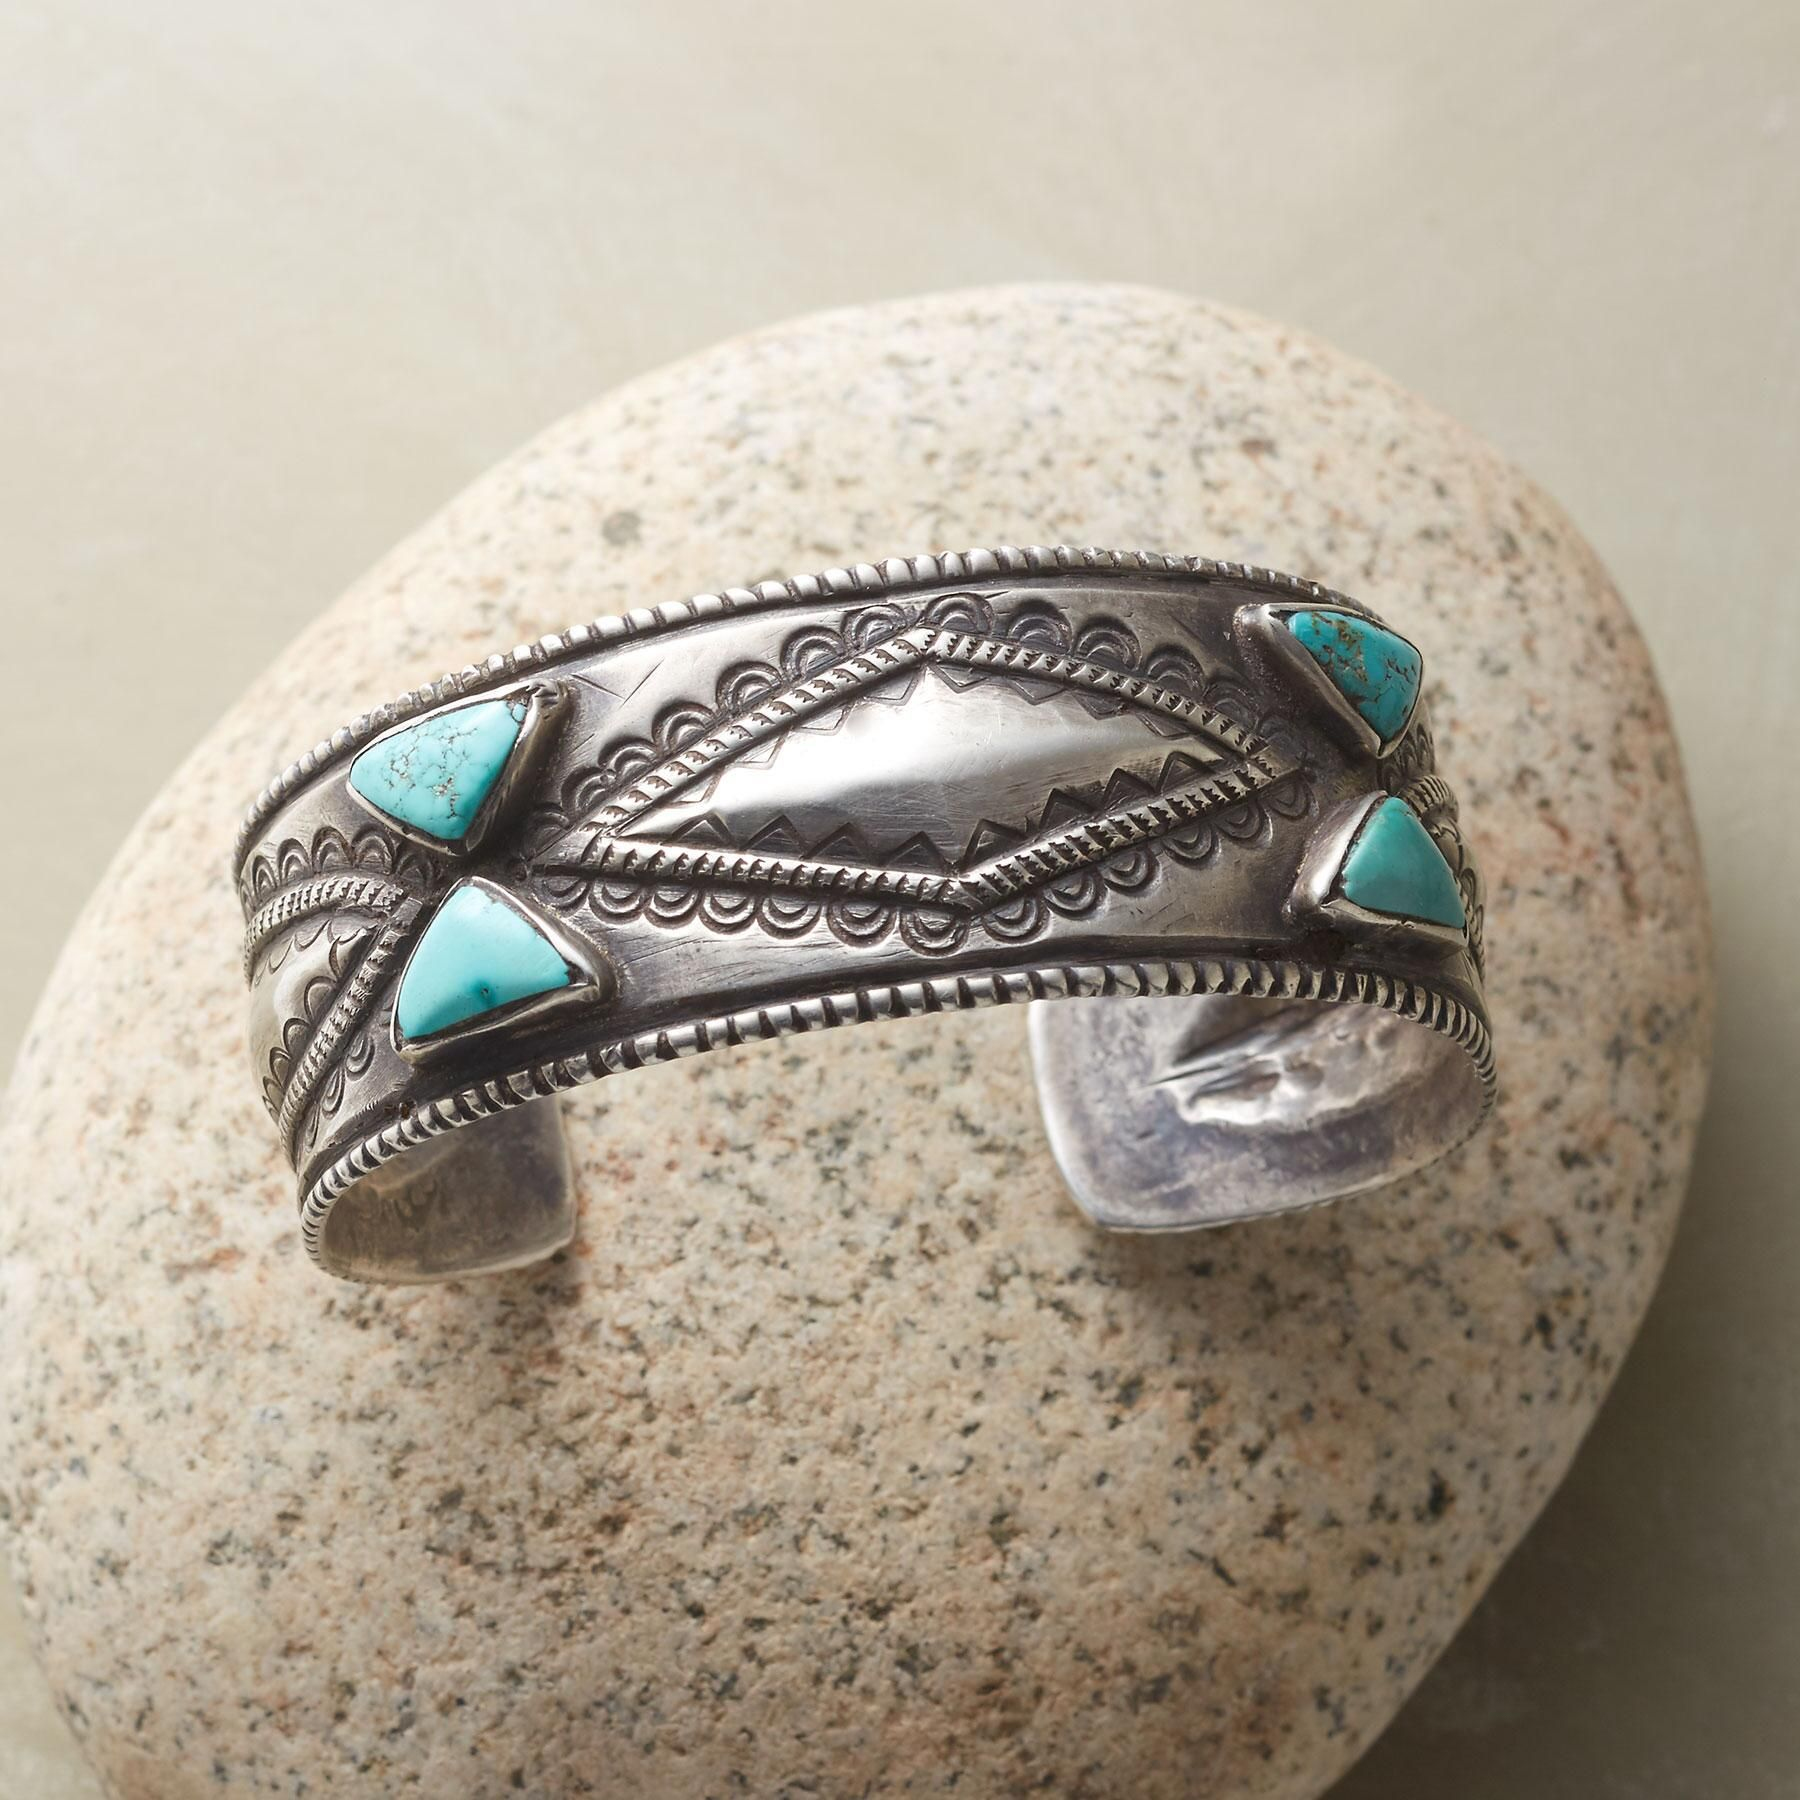 """SILVER DIAMOND FOX TURQUOISE CUFF -- Arizona silversmith Jock Favour highlights his one-of-a-kind cuff with triangles of green-blue turquoise from the famed Fox mine in Nevada. The cuff is hand forged in coin silver from melted pre-1964 coins, using the traditional Navajo ingot method, with hand stamping and repoussé work. Made in USA. Exclusive. 2-1/2"""" dia. 1"""" tapers to 5/8""""W."""